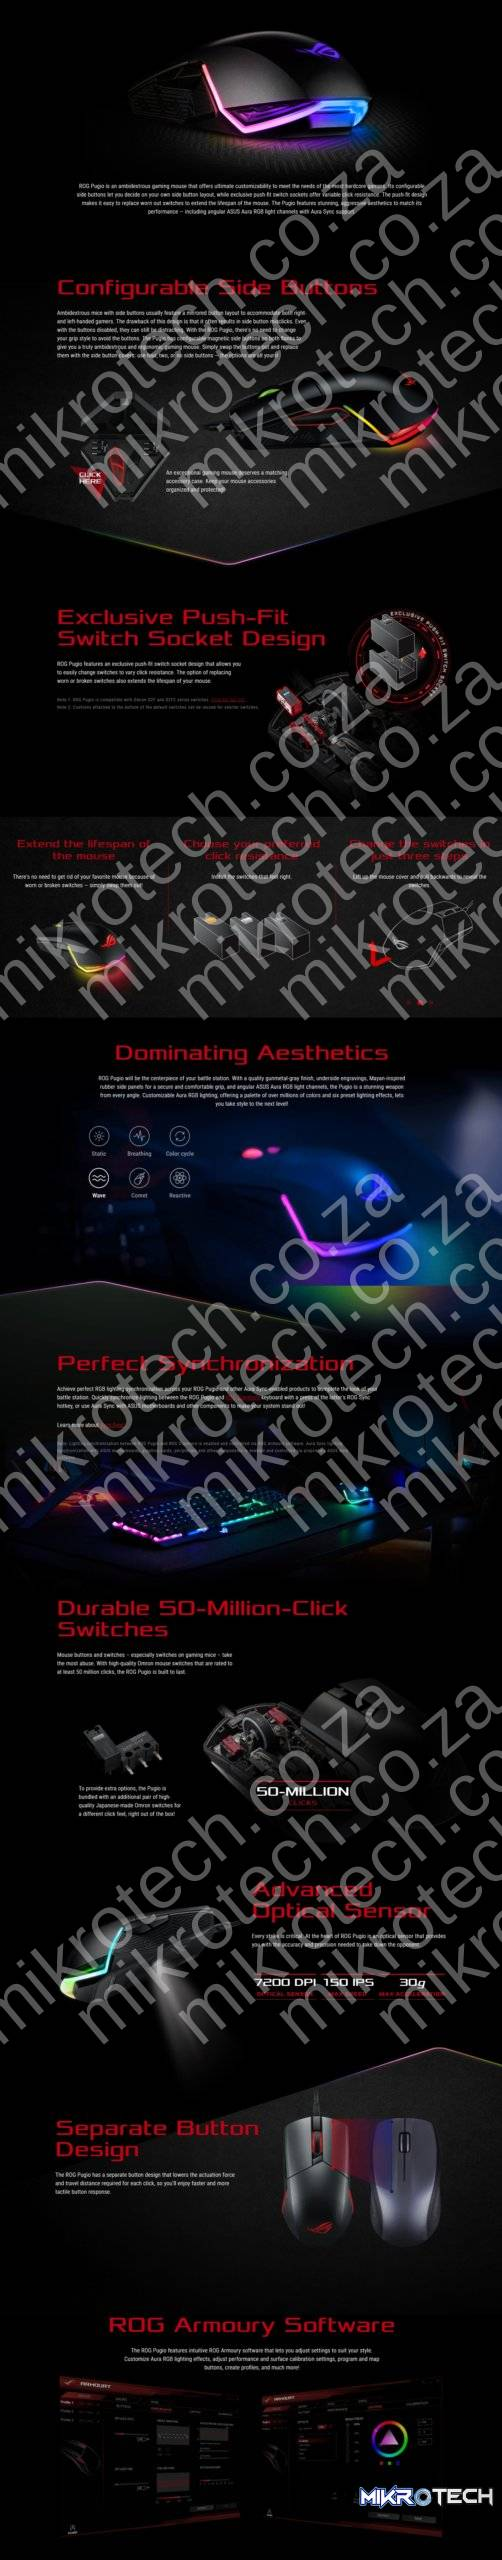 Asus ROG Pugio Optical RGB Ambidextrous Gaming Mouse